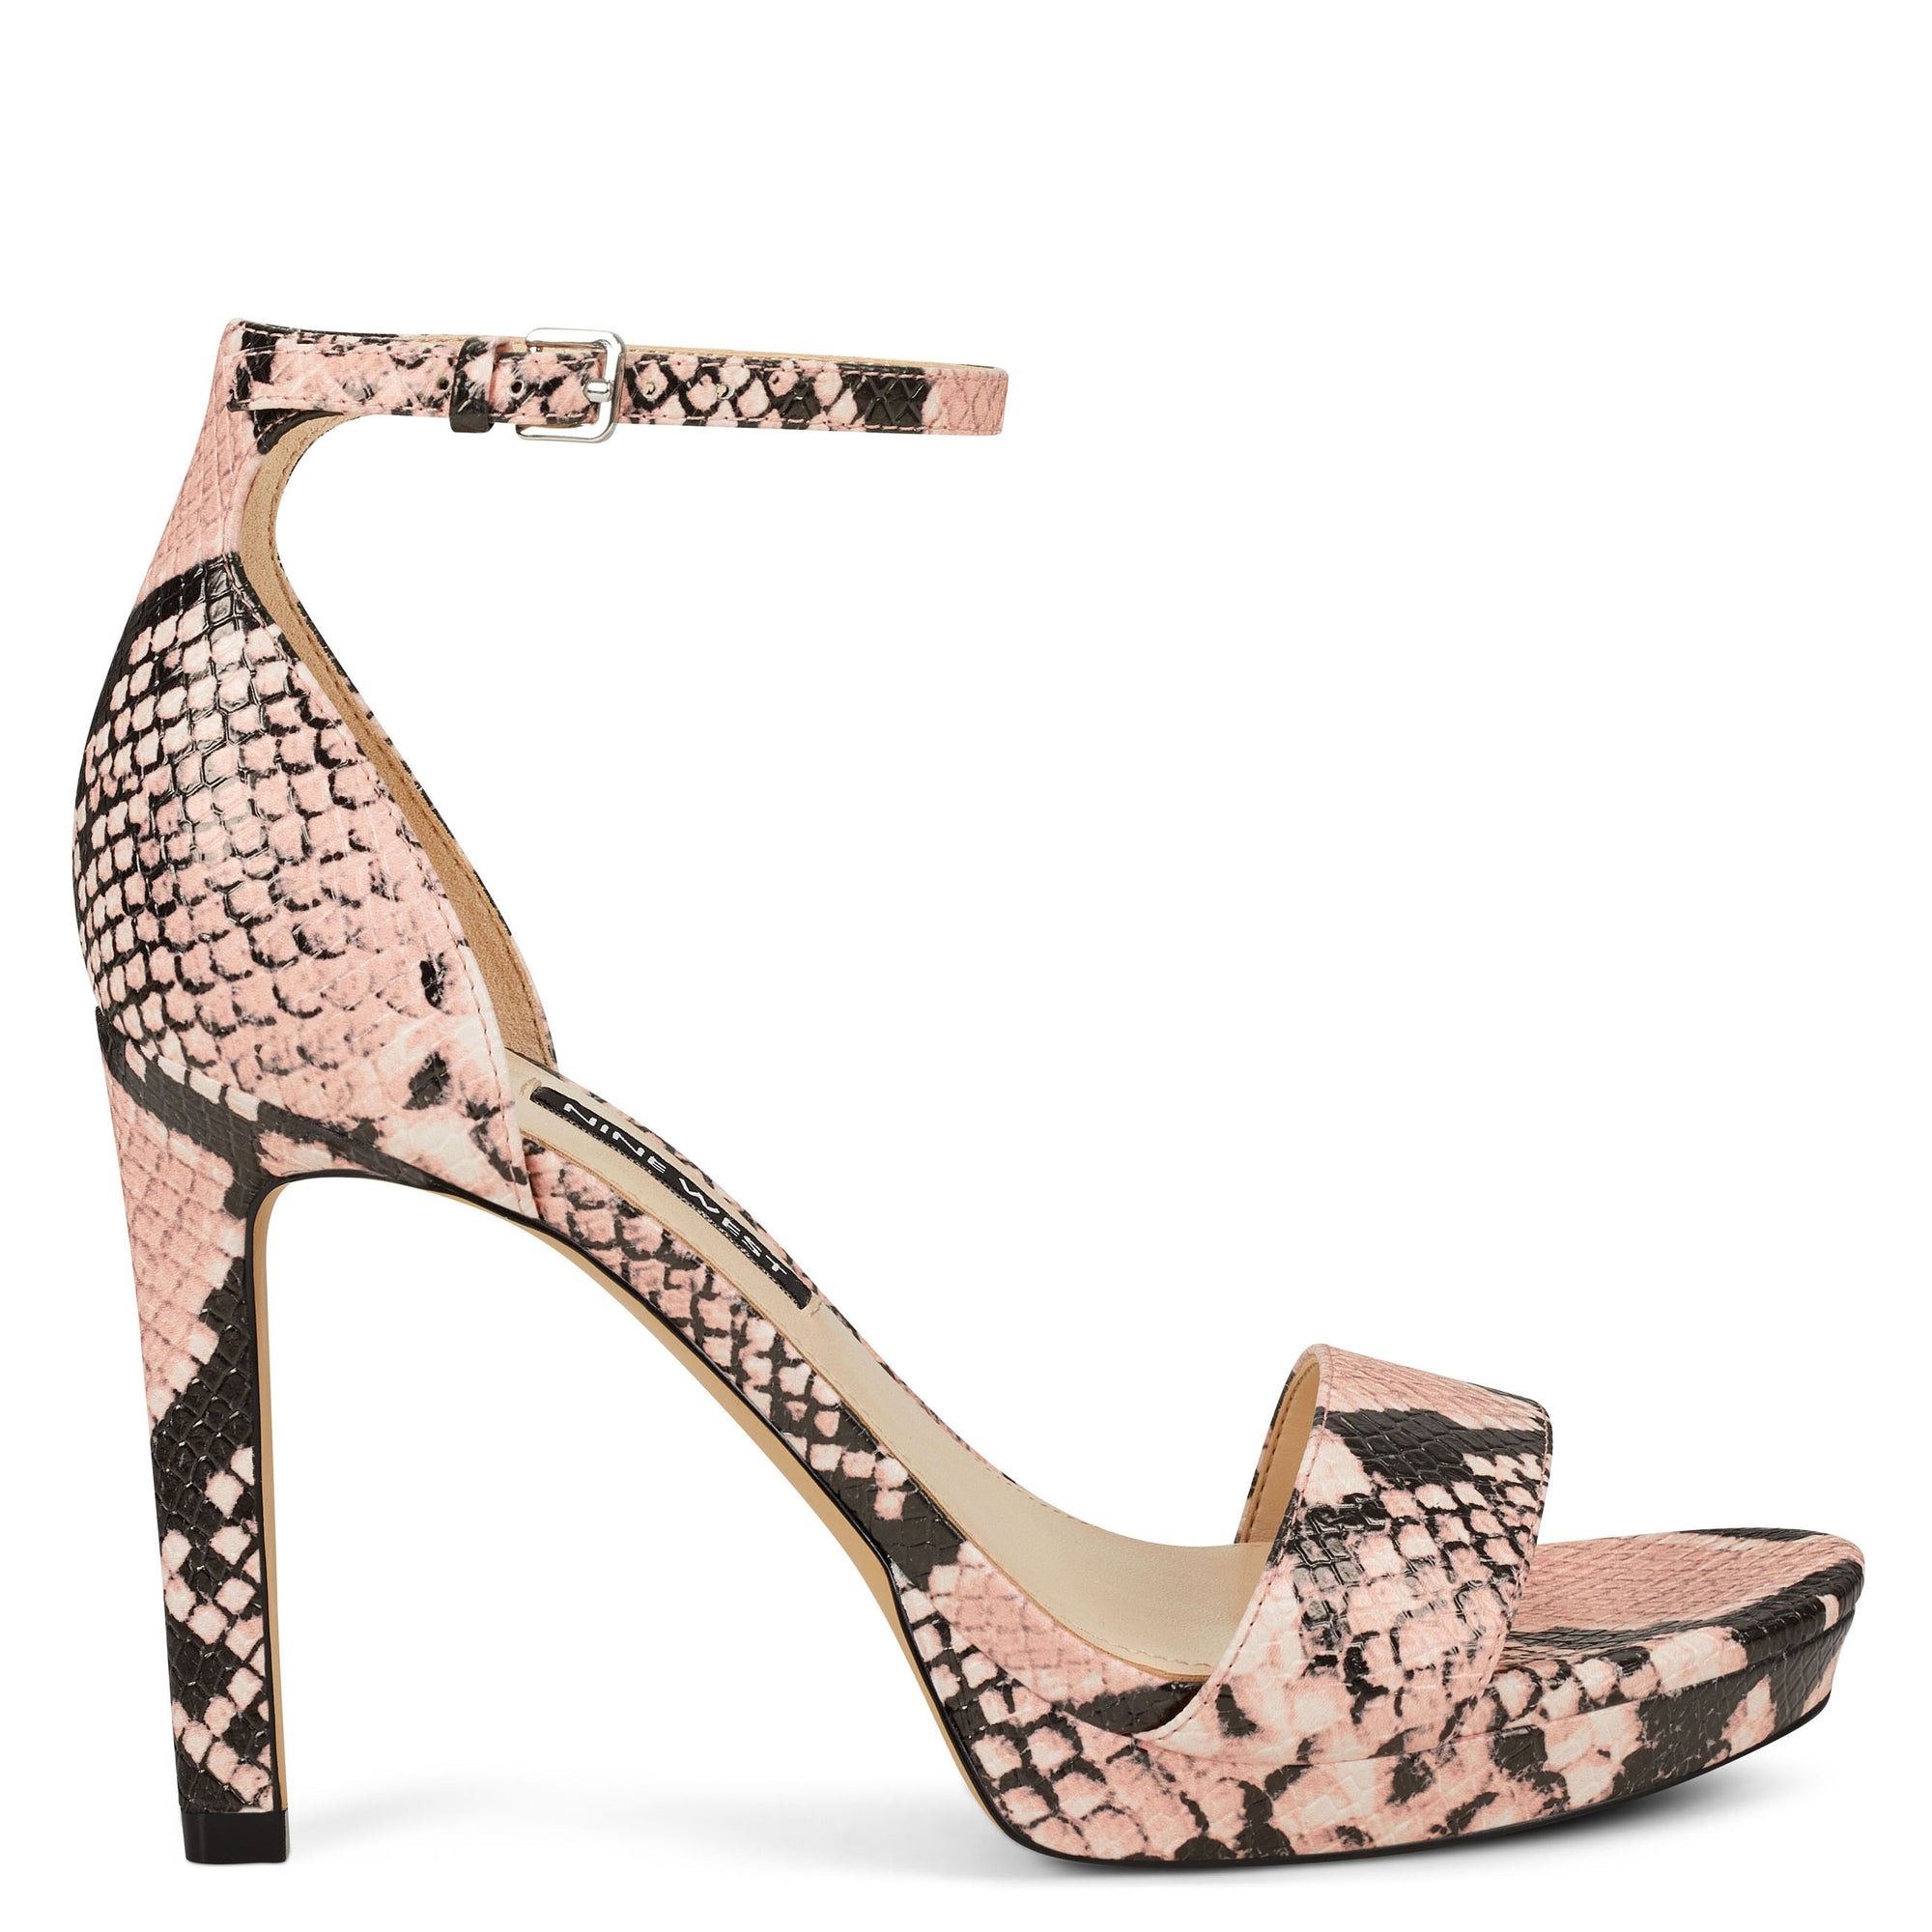 edyn-ankle-strap-sandals-in-apricot-snake-print